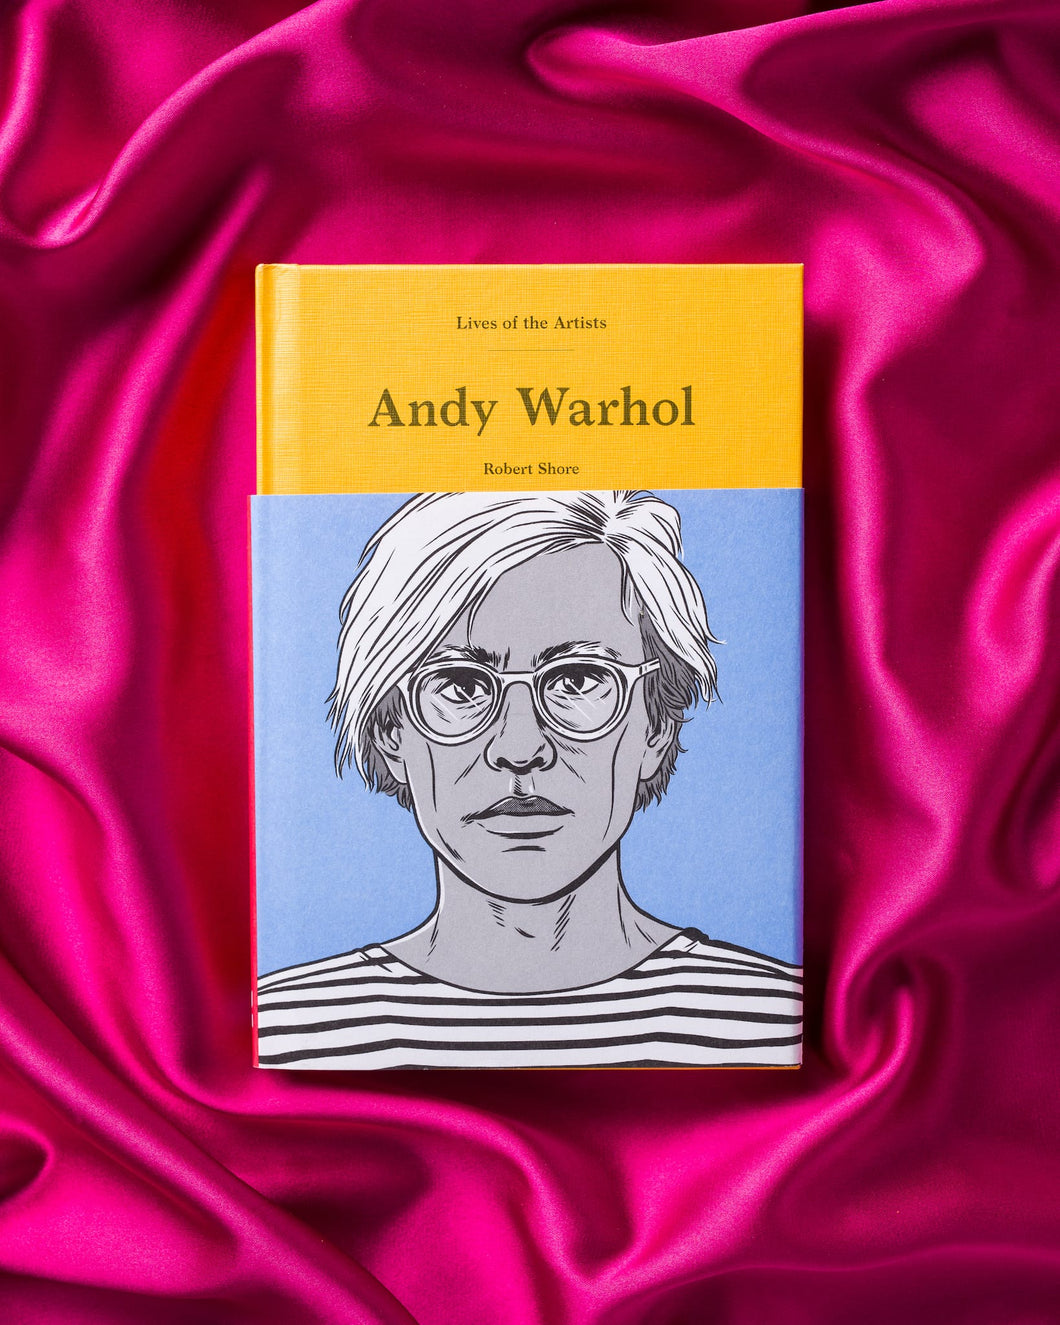 Lives of the Artists: Andy Warhol